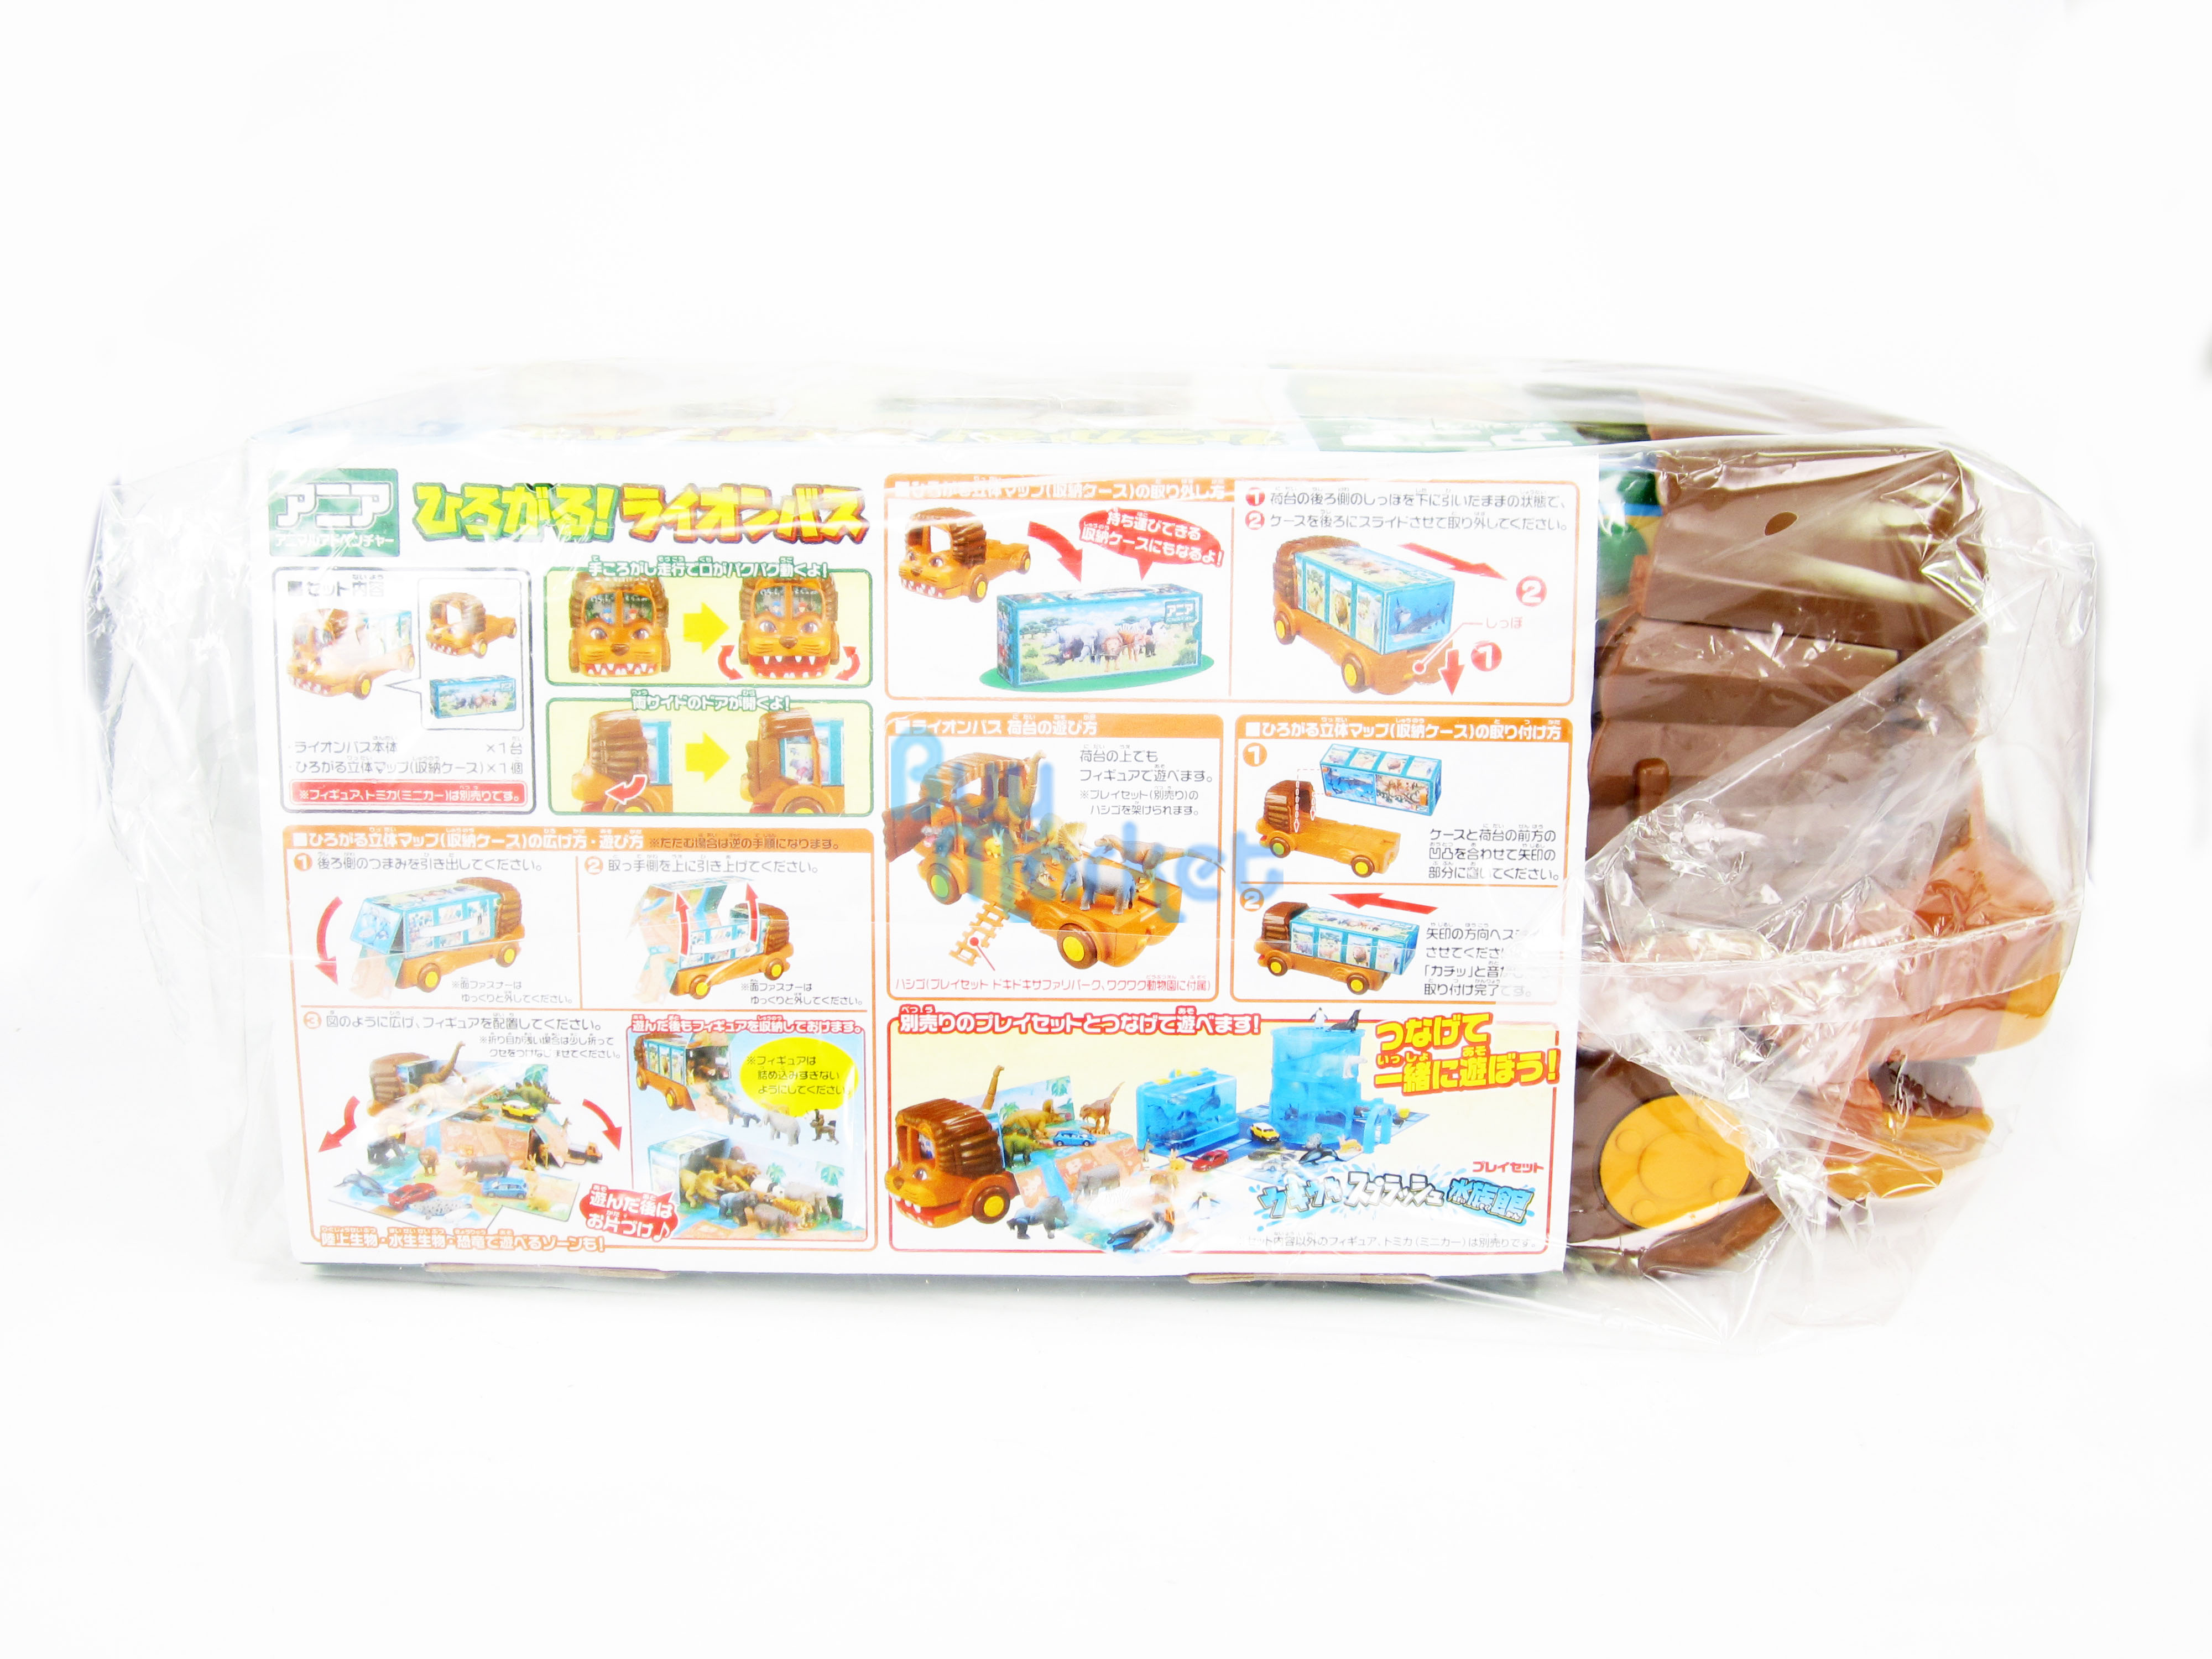 Takara-Tomy-ANIA-Spreads-Lion-Storage-Bus-Include-Map-Kid-Toys-Education